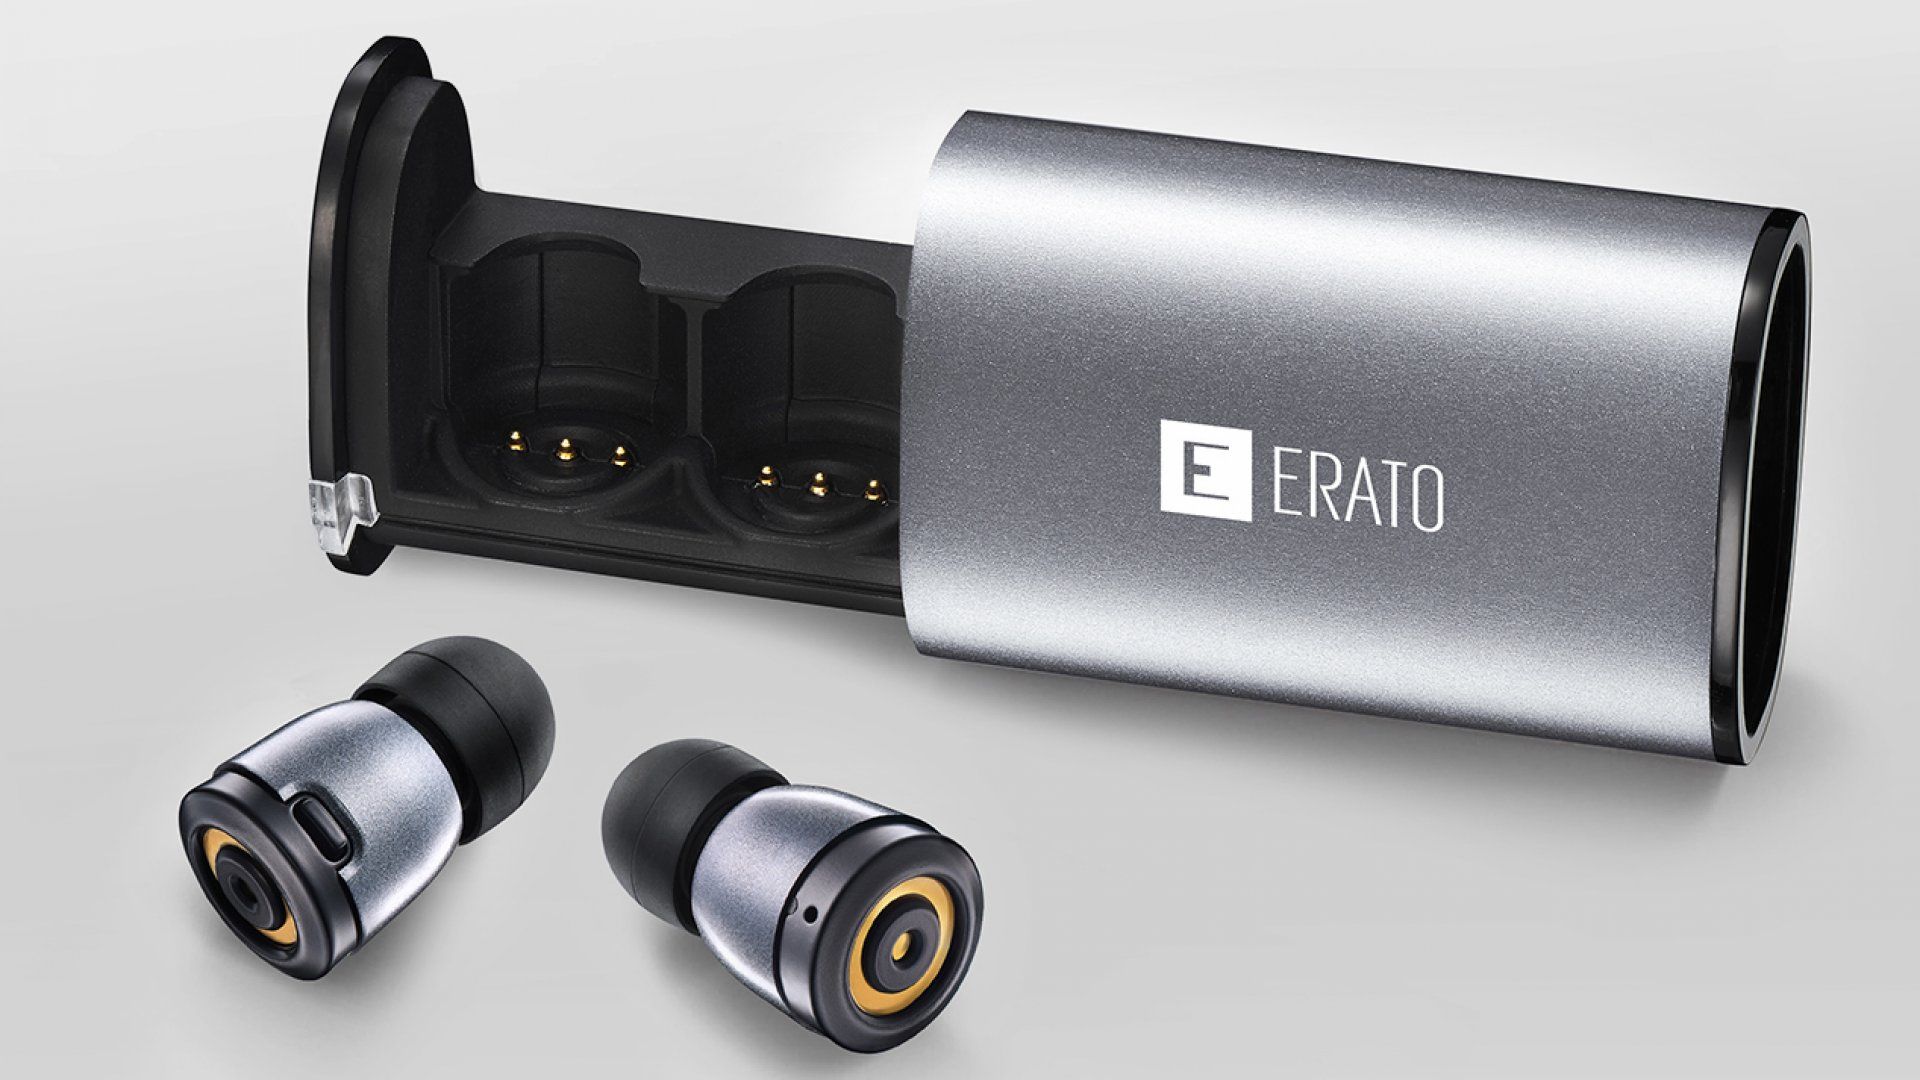 5 Ways Erato Nailed the Design of Its Remarkable Wireless Headphones